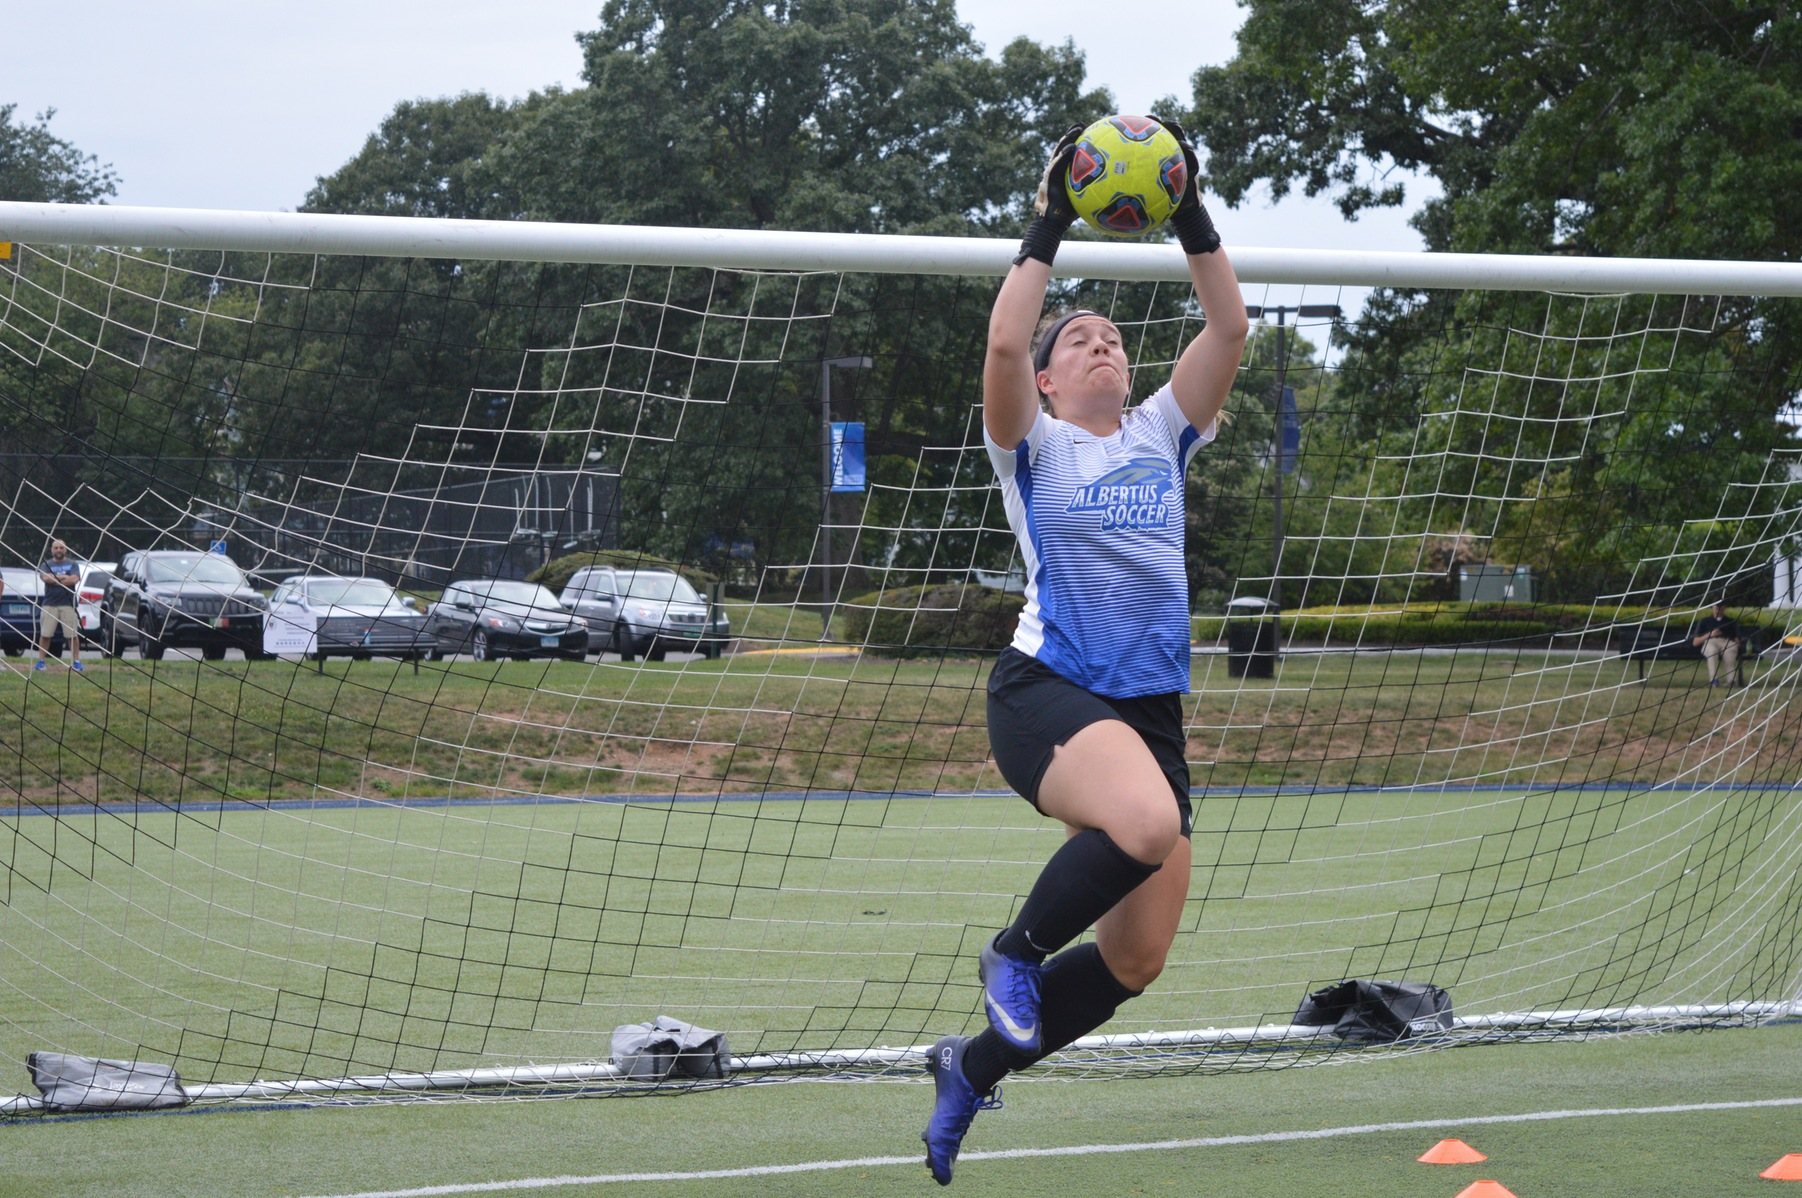 Women's Soccer Blanked by UMass Dartmouth, 2-0